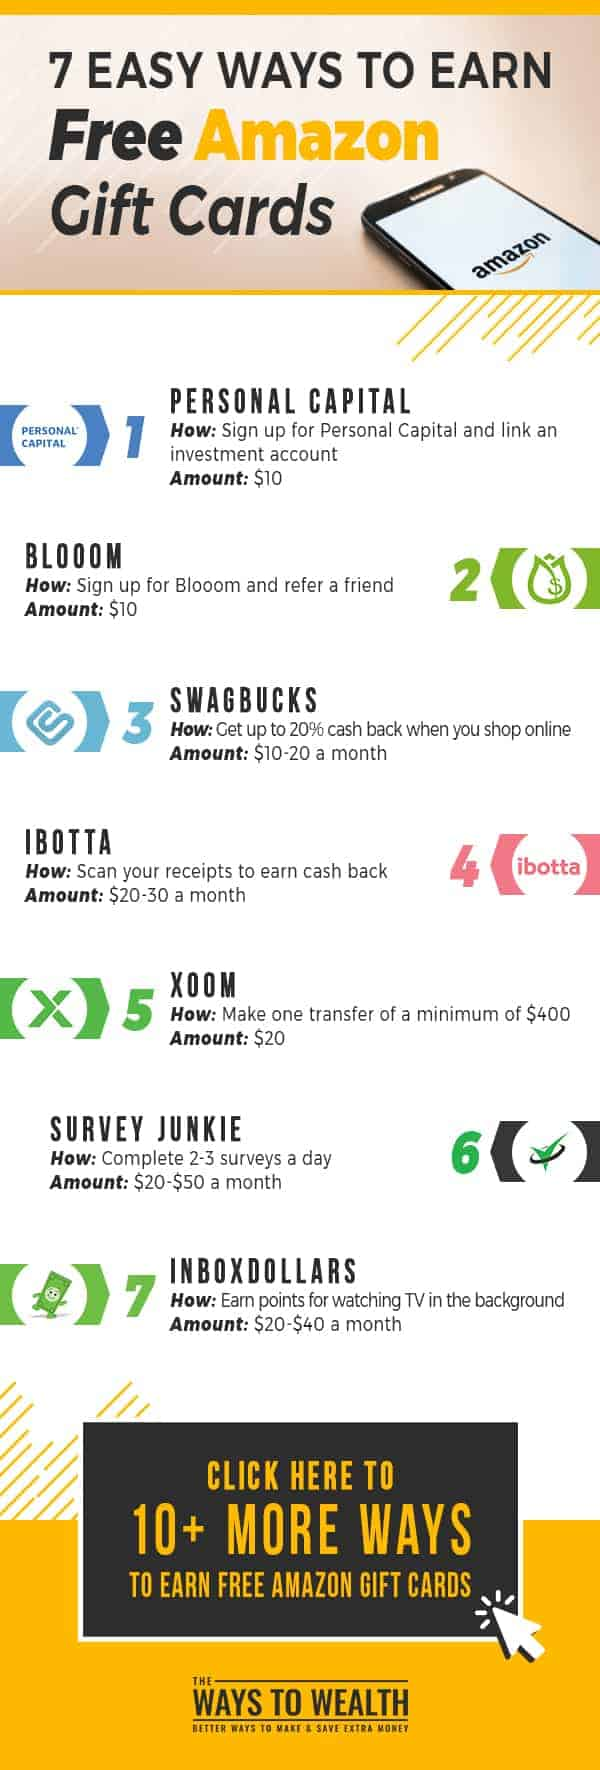 20 Ways To Earn Free Amazon Gift Cards free gift cards how to get | amazon gift card free | ways to earn gift cards | surveys for gift cards earn free amazon gift cards | #thewaystowealth #amazon